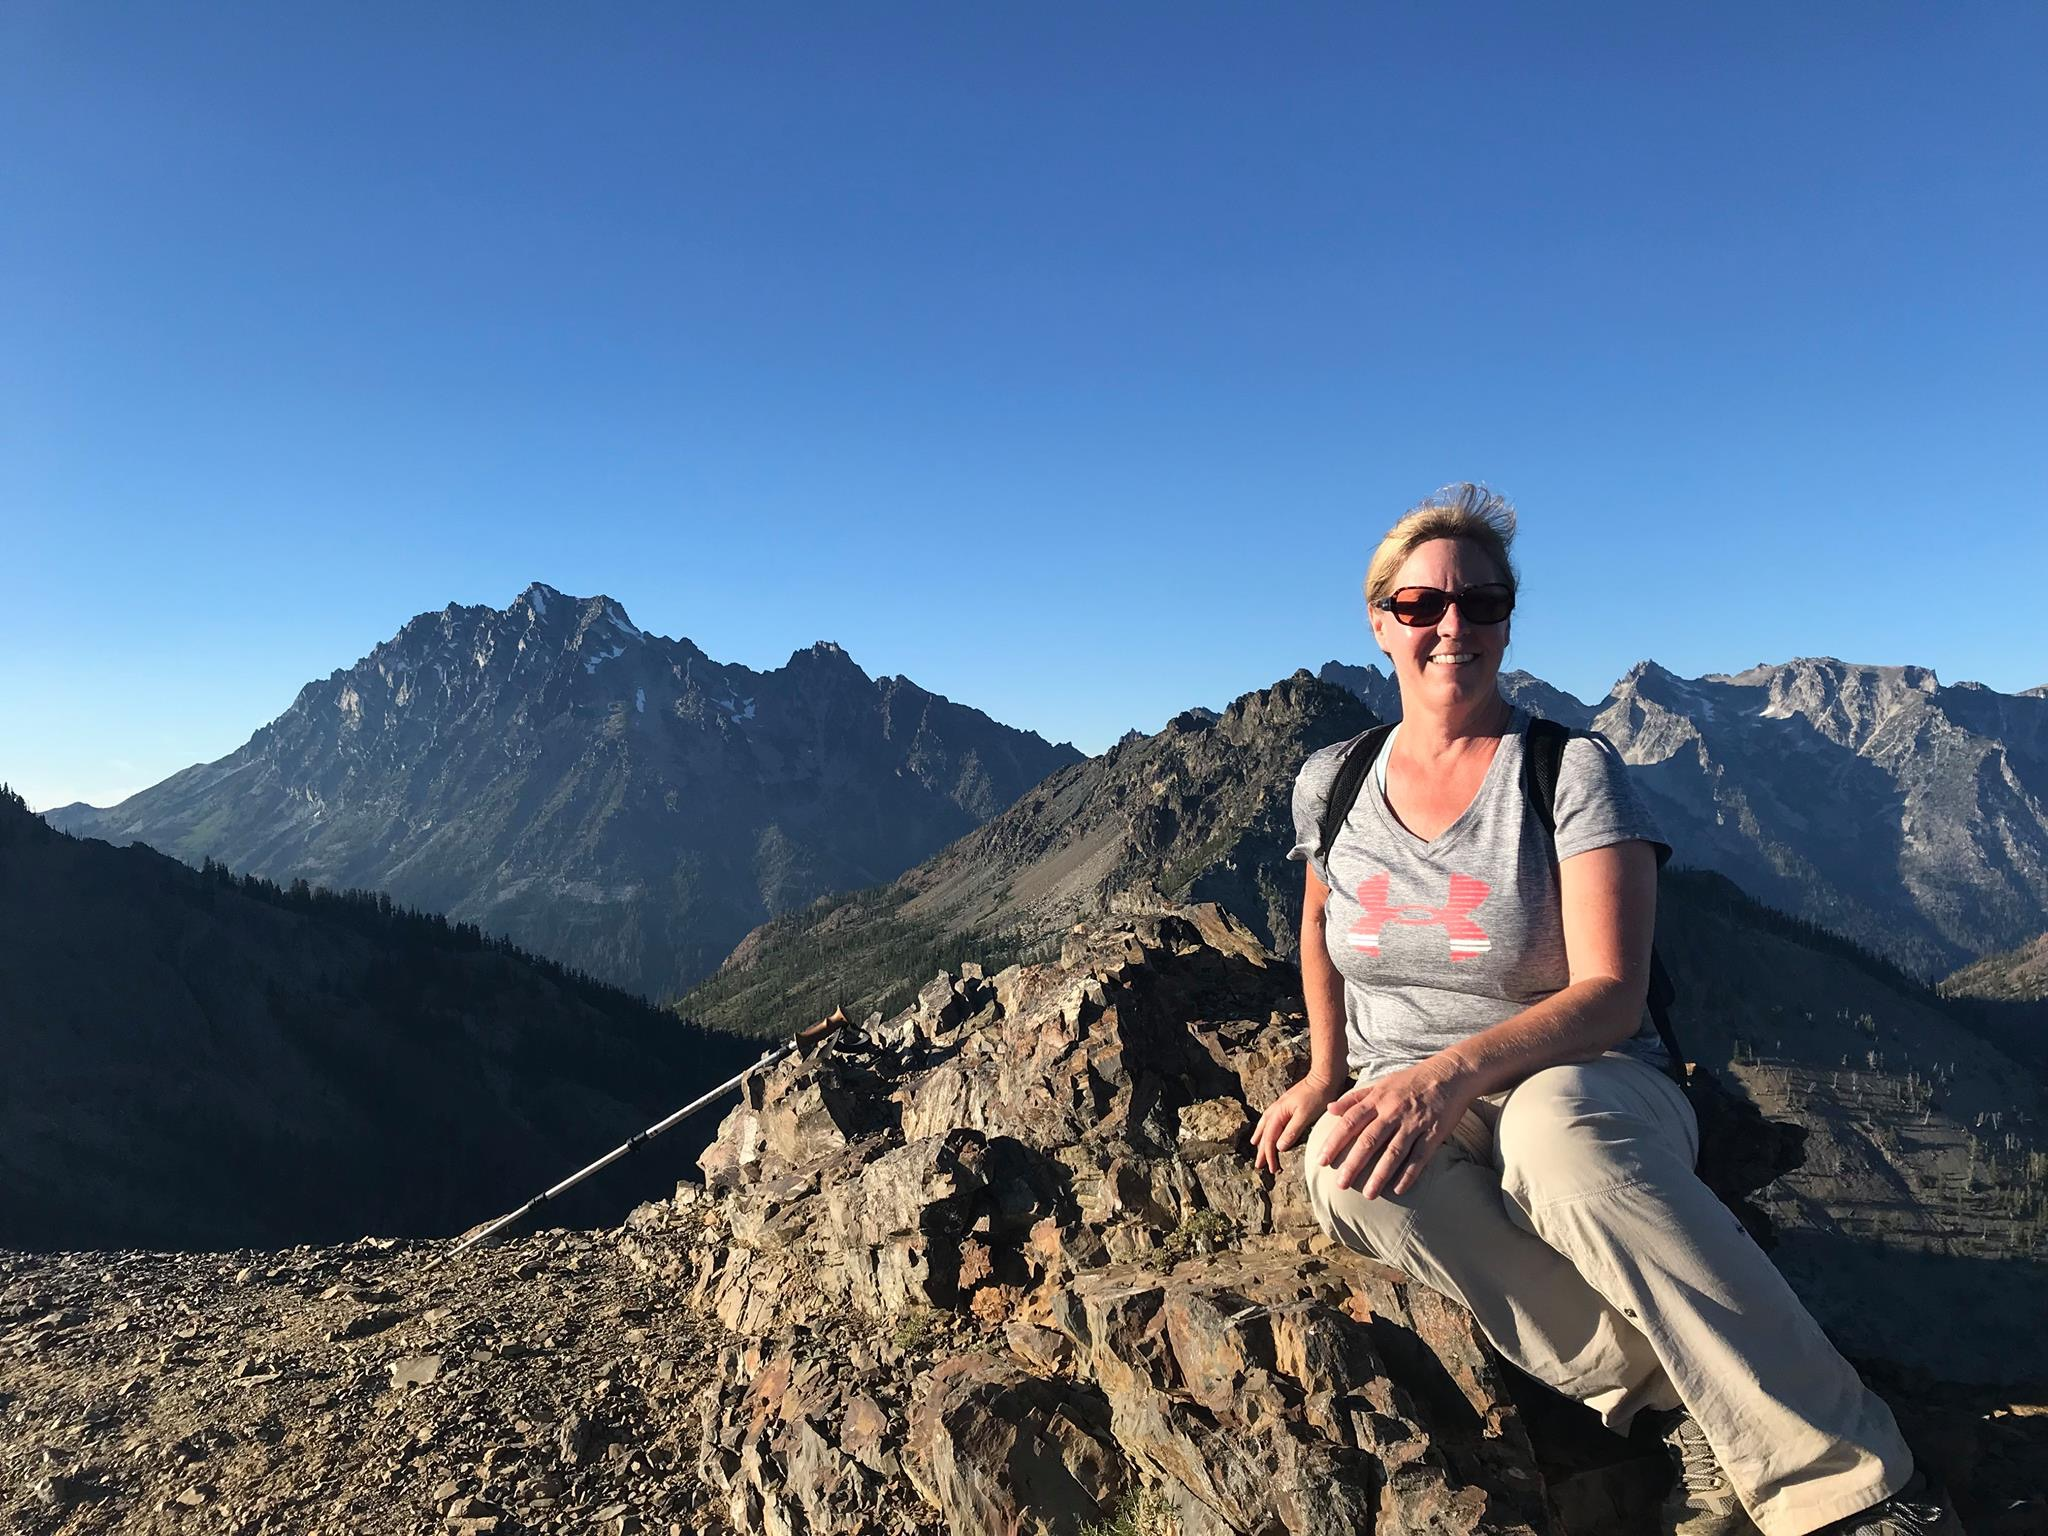 - WILDERNESS GUIDEKaren Leonard - Wilderness First Aid CertificationKaren loves the outdoors. Her passion and drive are contagious and an inspiration. We are excited to have her aboard for our Appalachian Trail adventures.